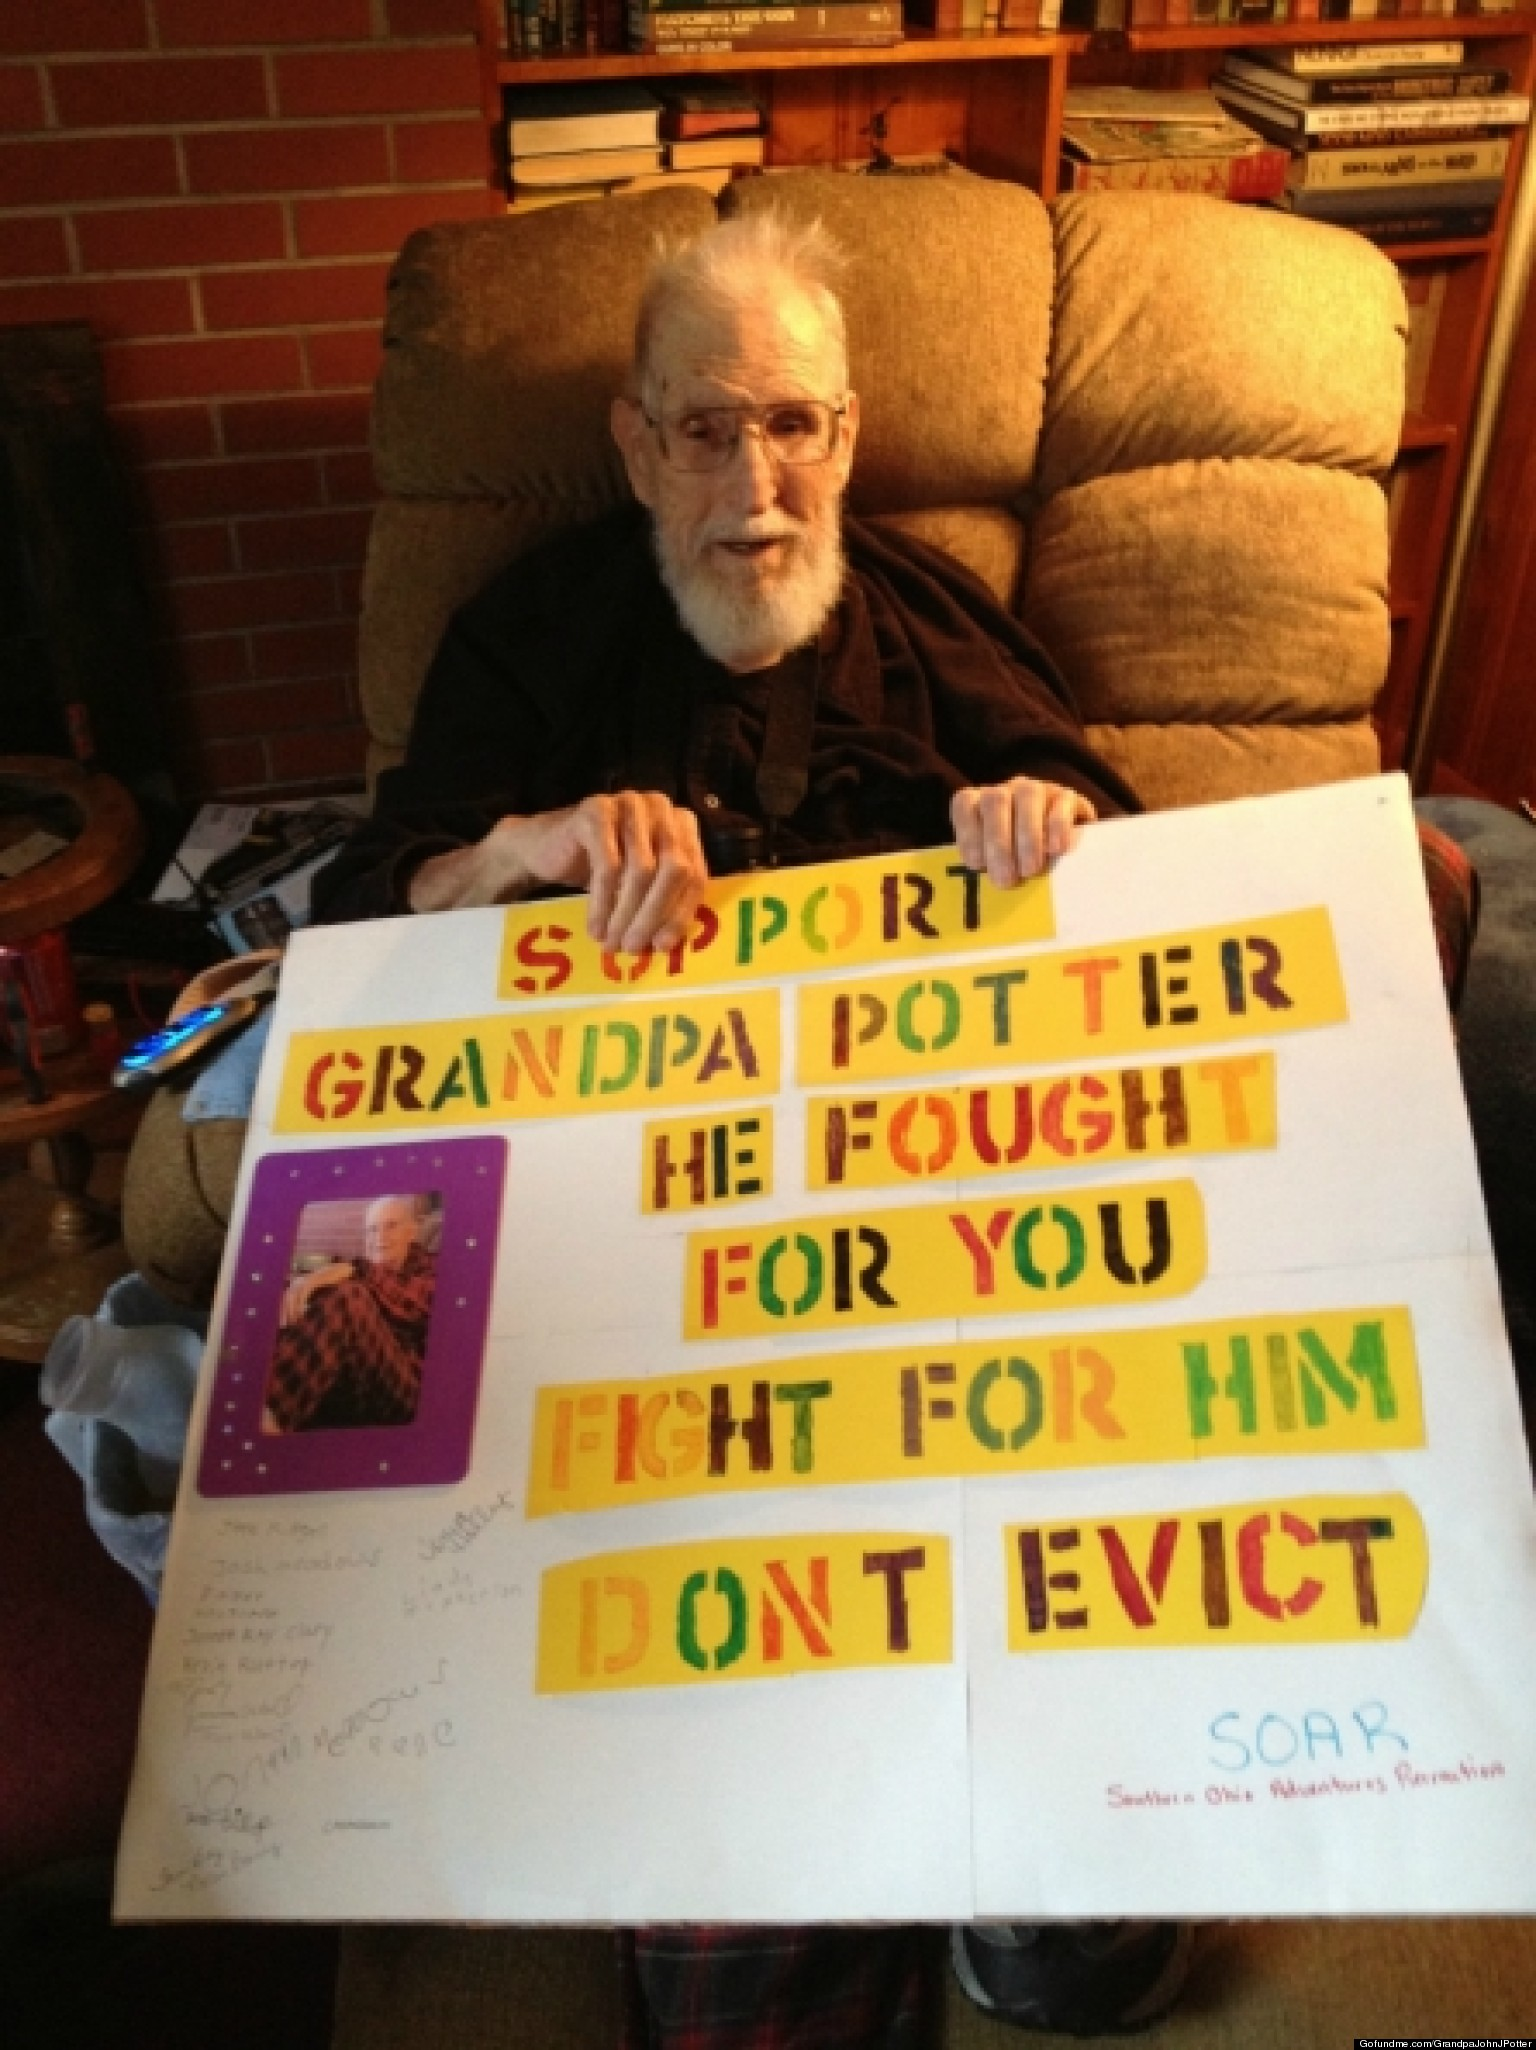 WWII Vet Evicted By Daughter; Strangers Rally To Help Save His Home